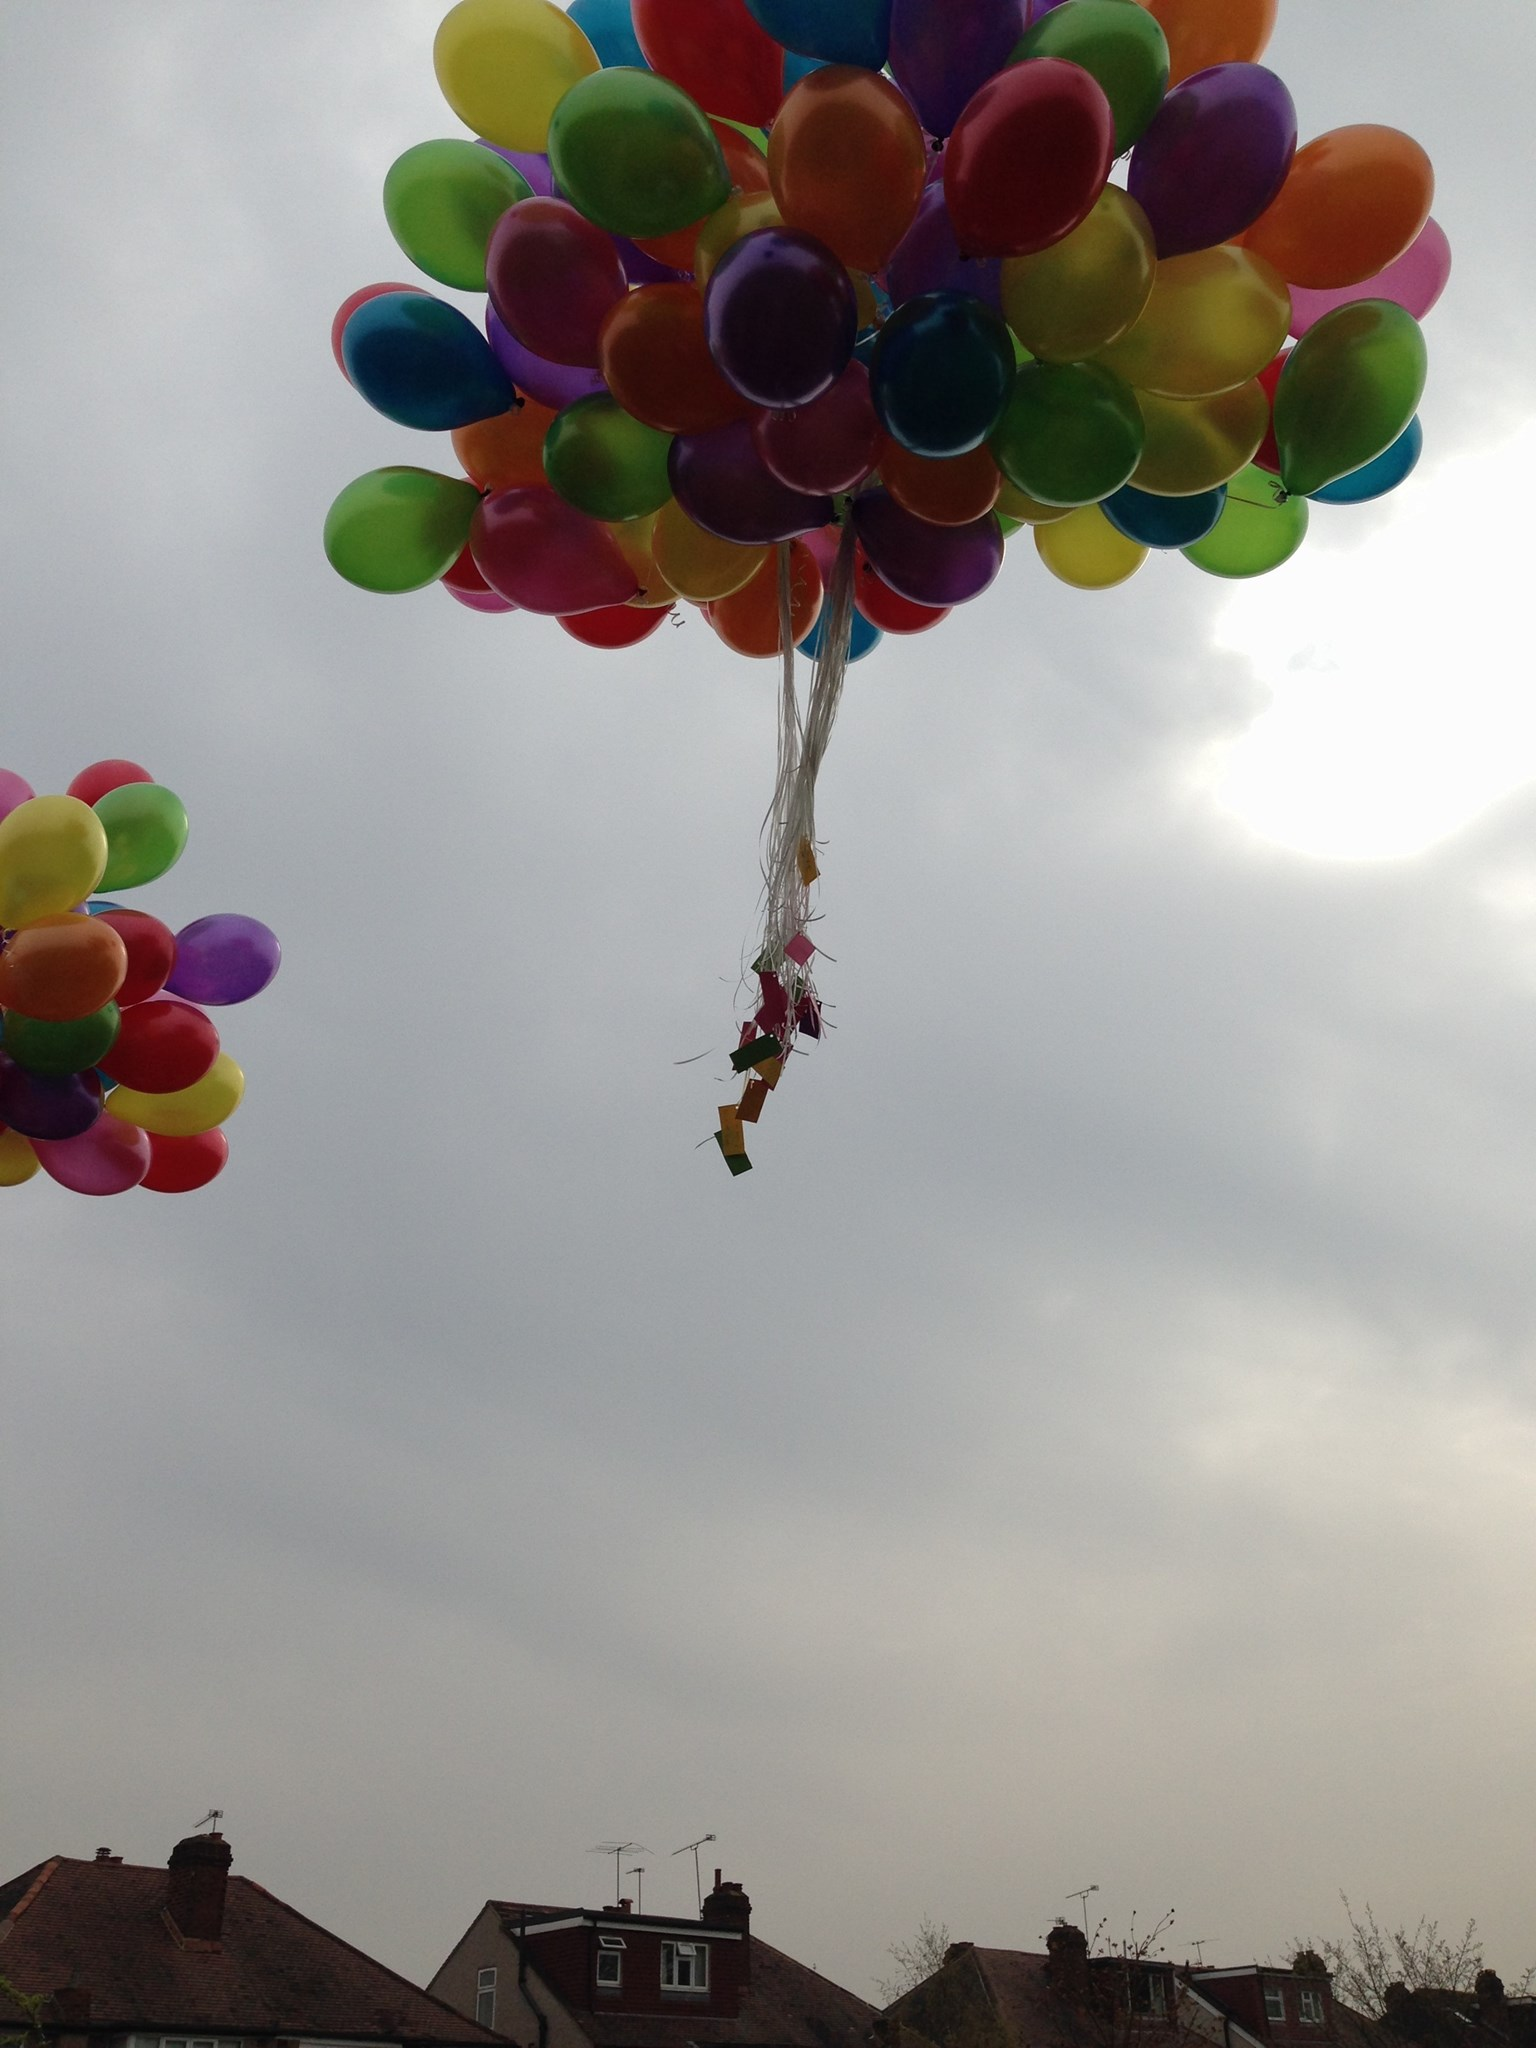 161 balloons for everyday of her life <3